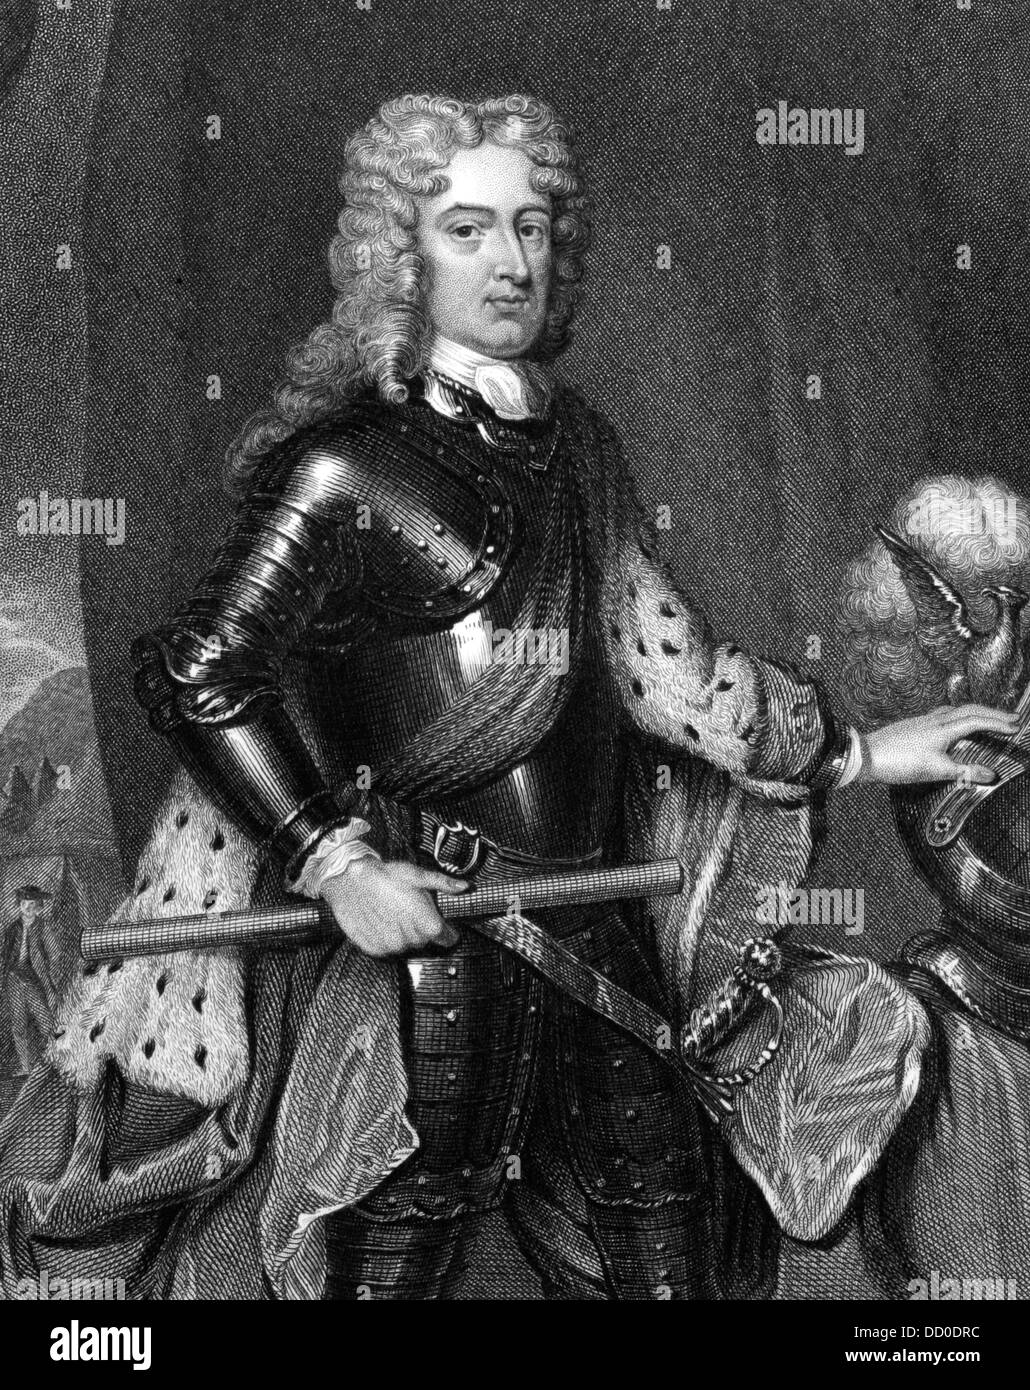 John Churchill, 1st Duke of Marlborough (1650-1722) on engraving from 1830. Prominent English soldier and statesman. - Stock Image